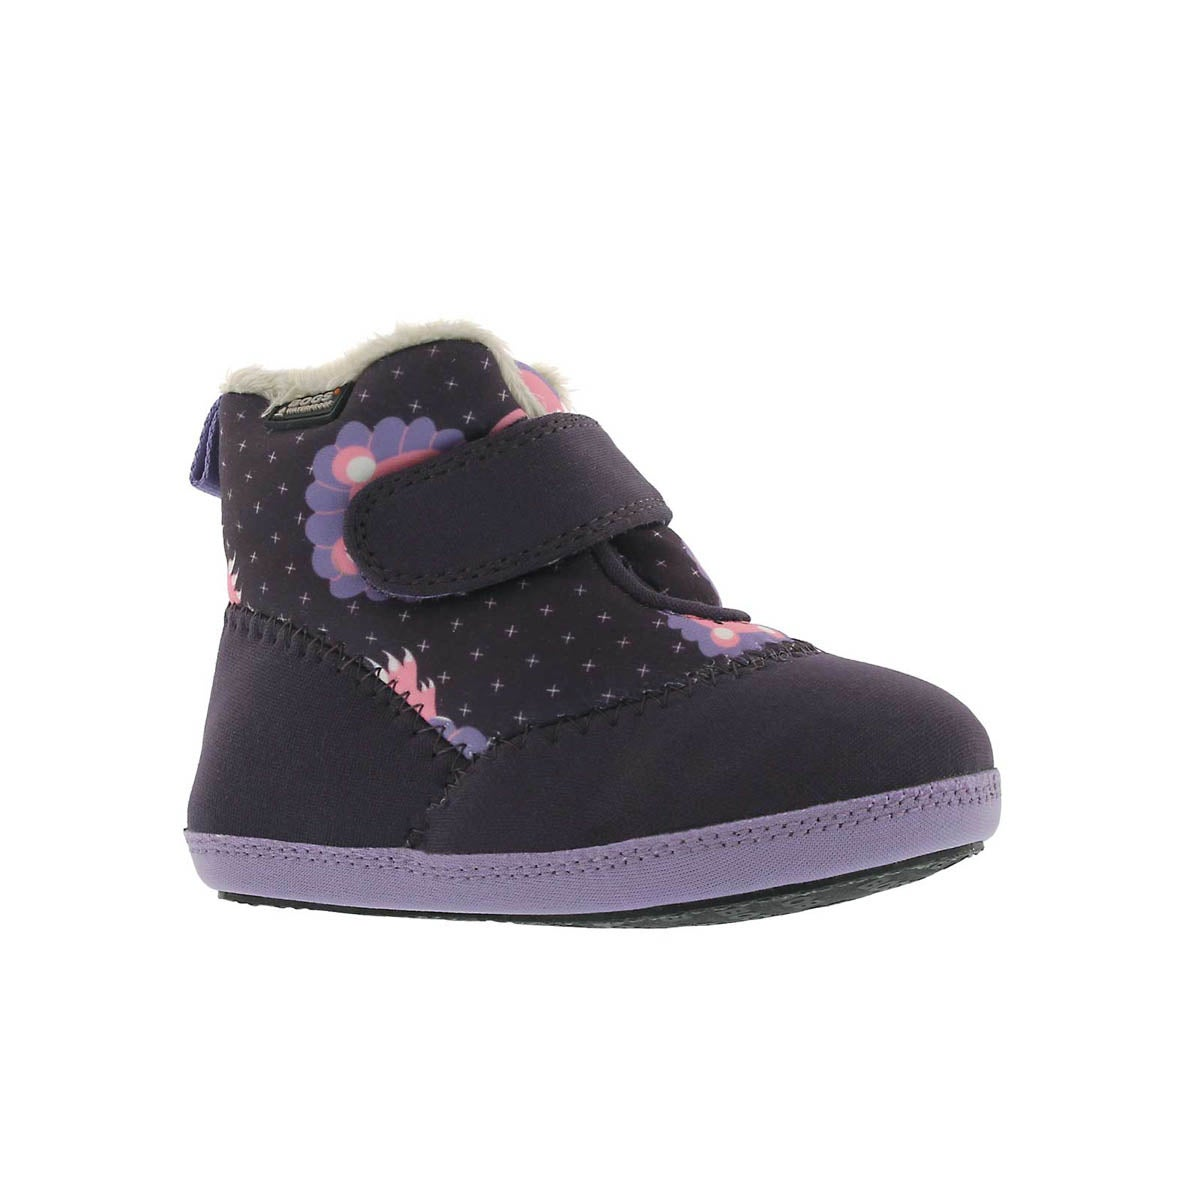 Infants' ELLIOT LION purple multi waterproof boots